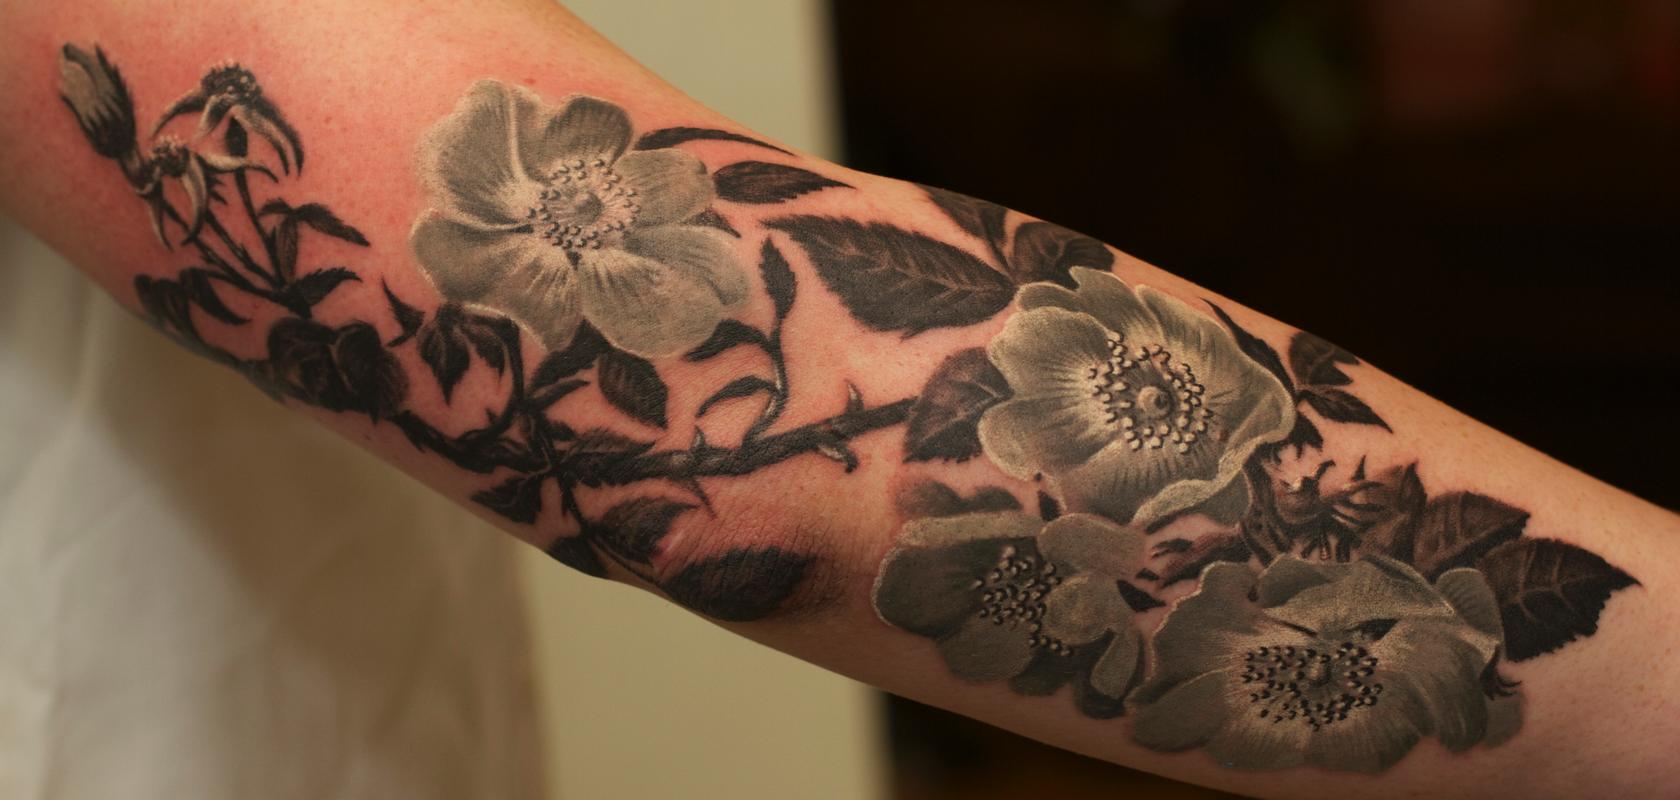 55 flower tattoos representing love and beauty black flower tattoos image source findyourtattoo izmirmasajfo